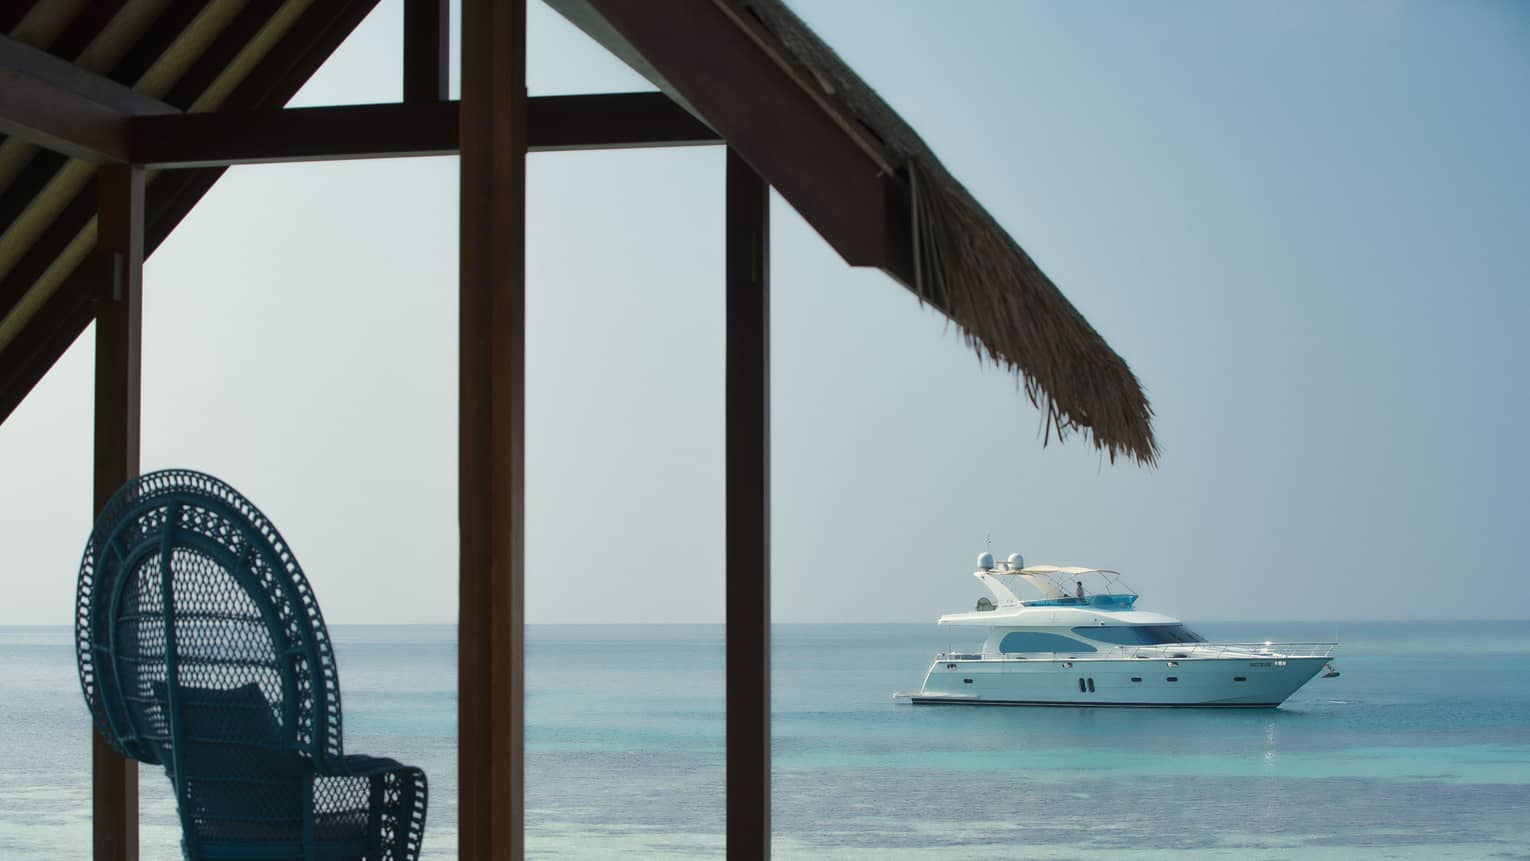 Wicker chair on cabana facing white private luxury yacht sailing on lagoon